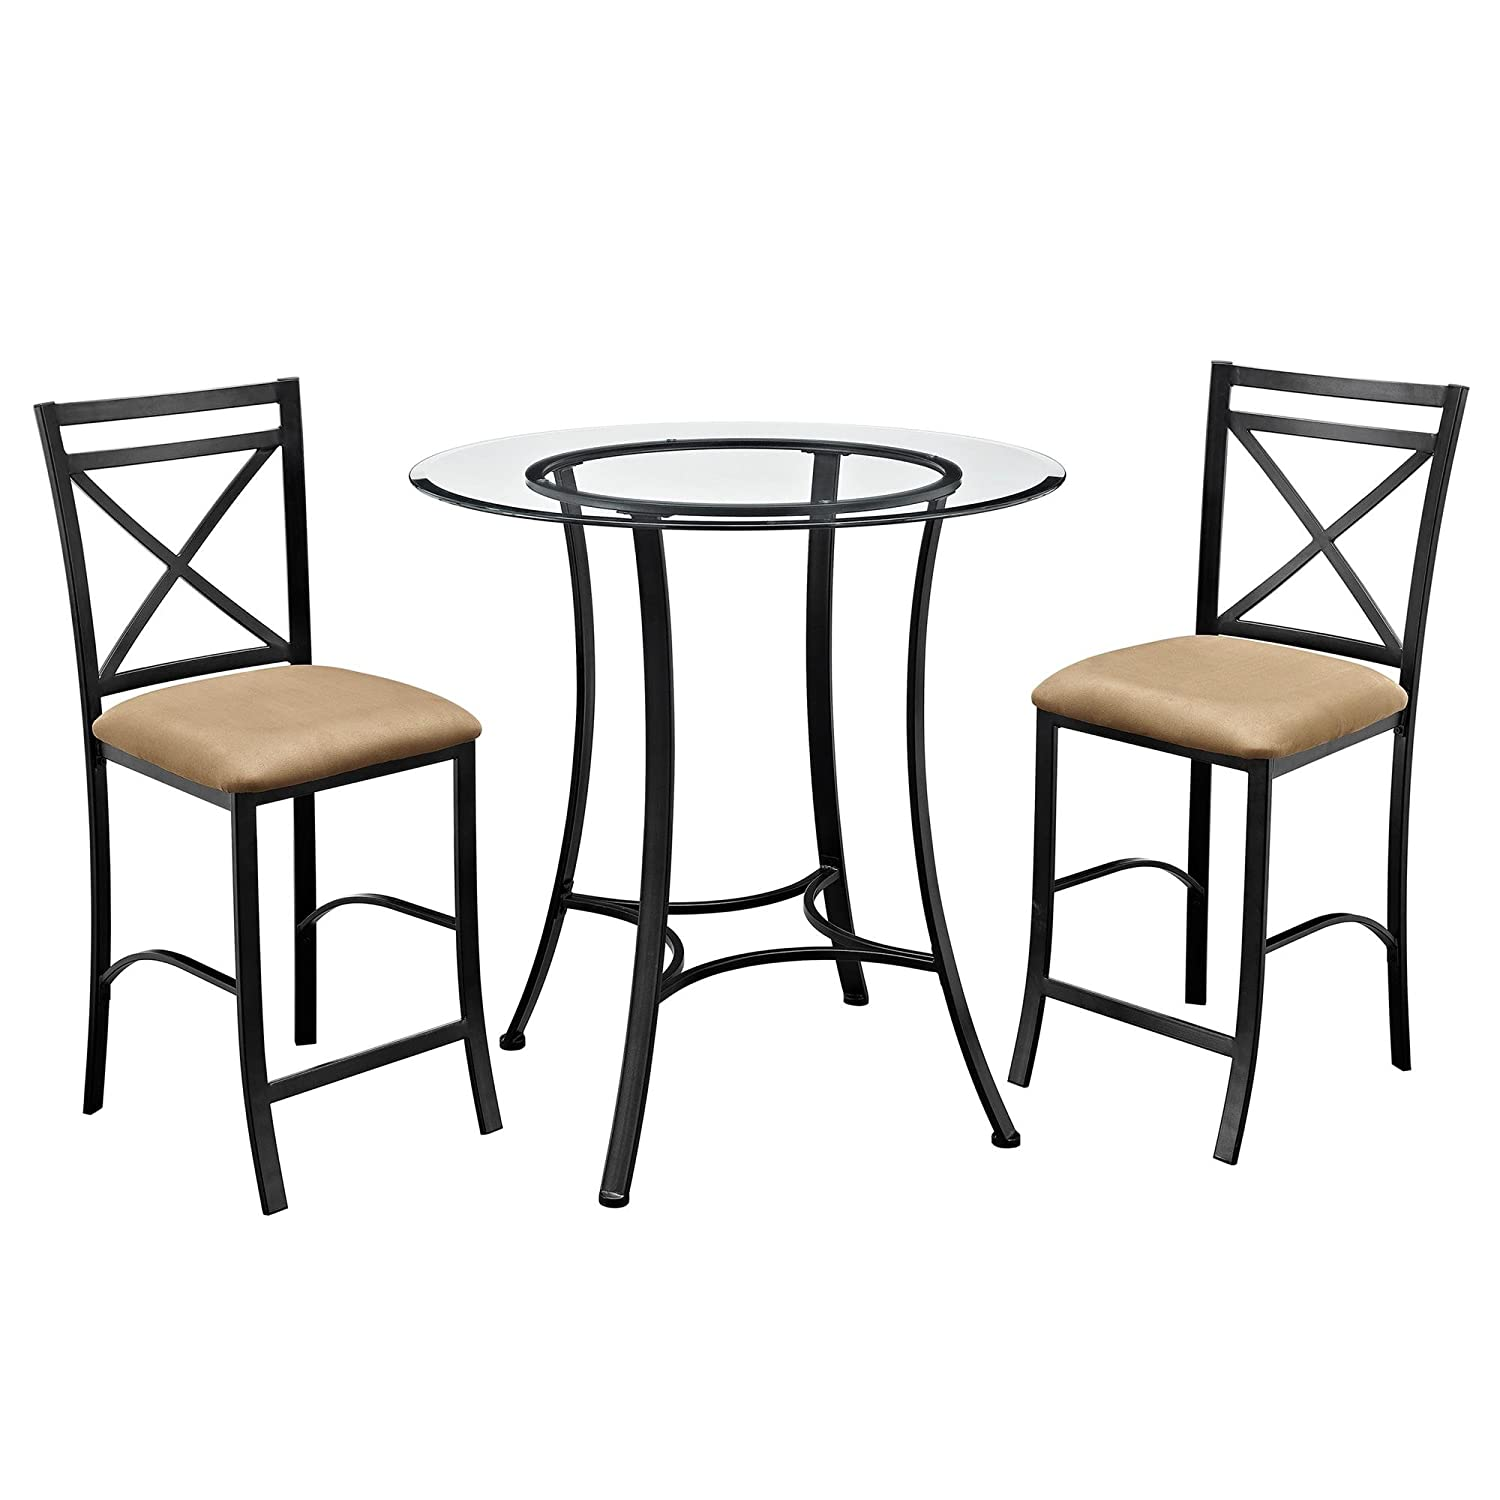 Dorel Living Valerie 3 Piece Counter Height Glass And Metal Dining Set Black Beige